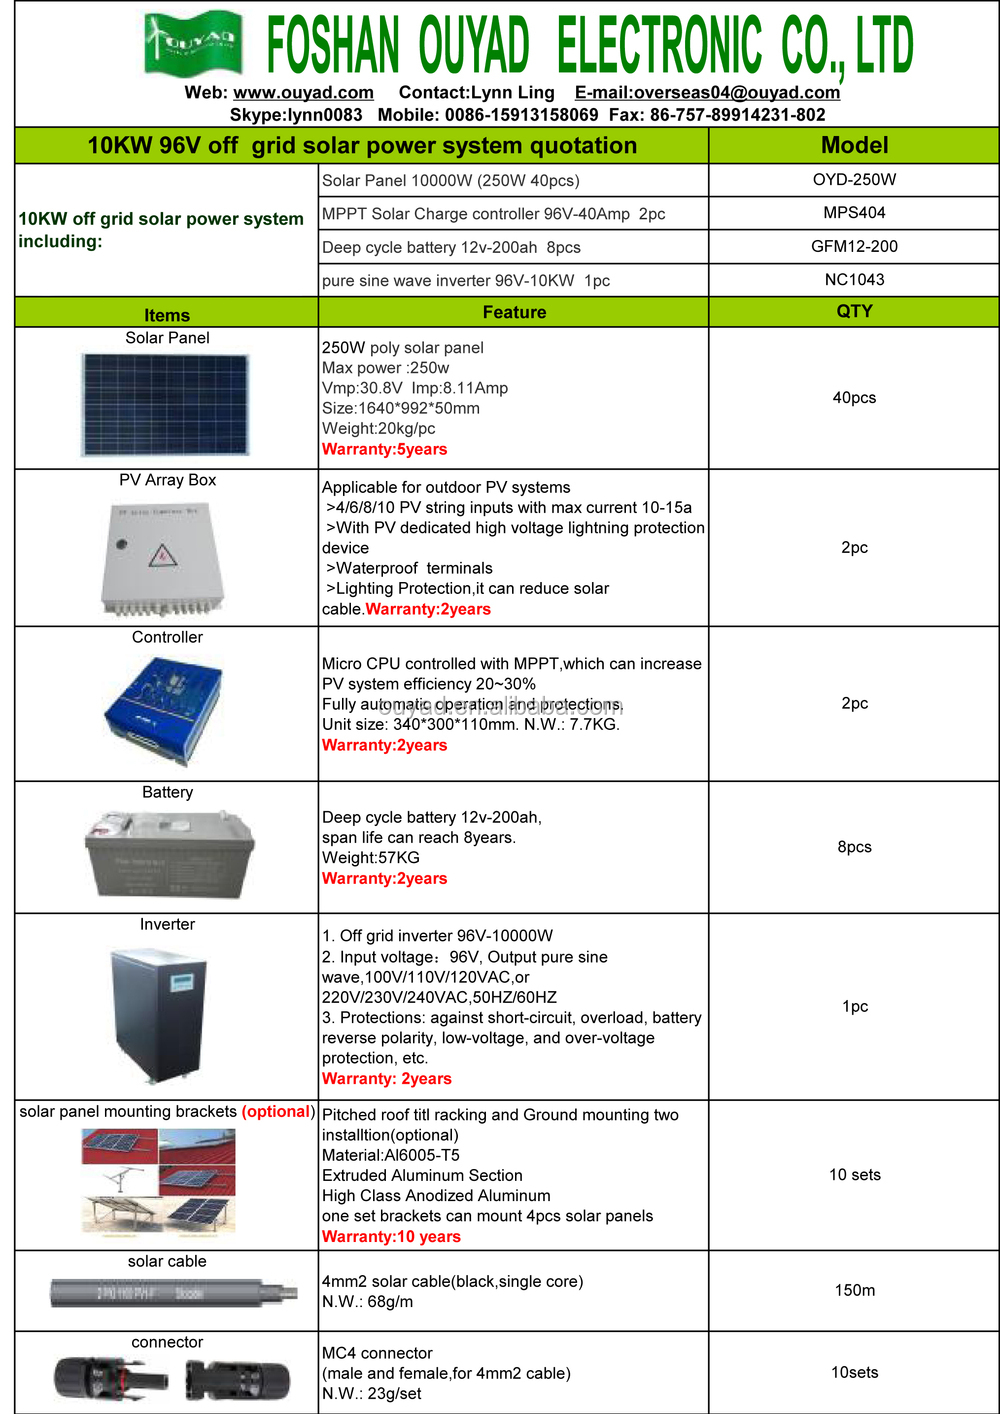 1 Kw Off Grid Residential Solar Power System For Home In